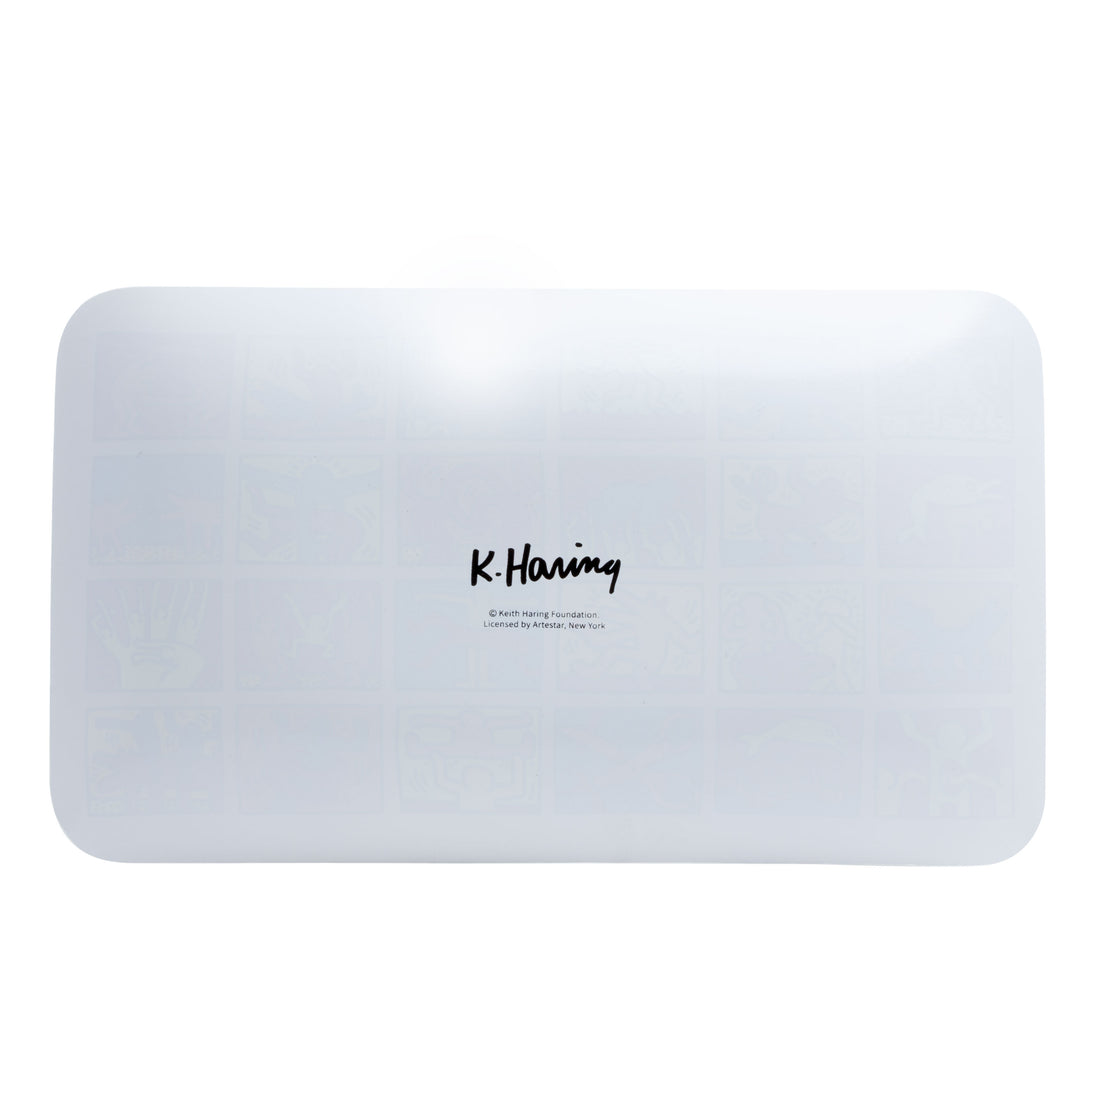 K. Haring Rolling Tray - Multi-Color - 420 Science - The most trusted online smoke shop.